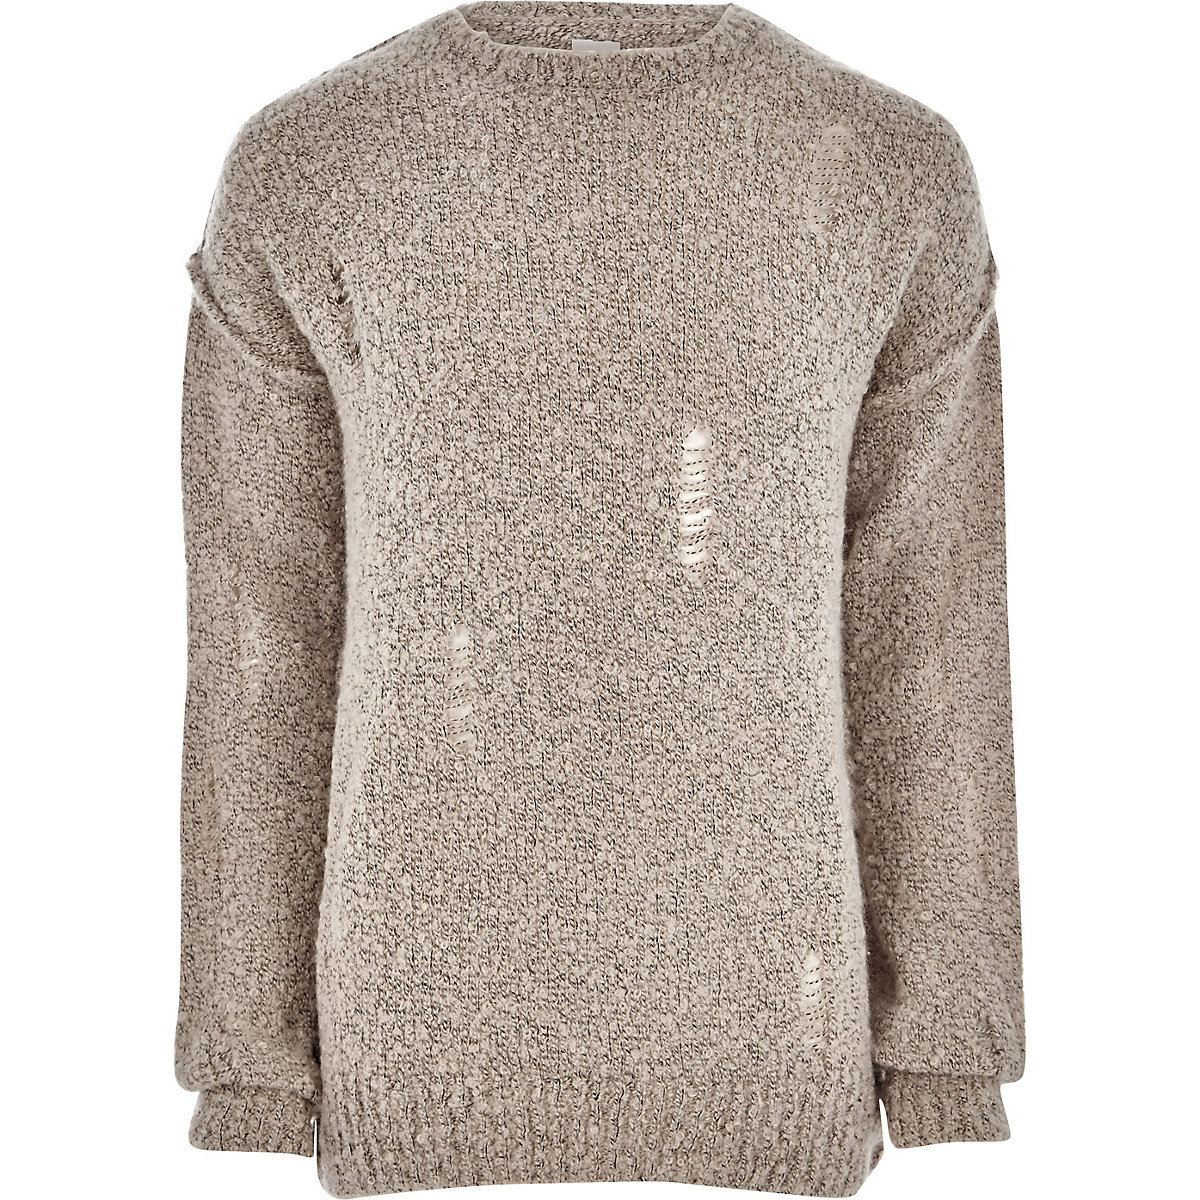 Stone boucle knit distressed jumper